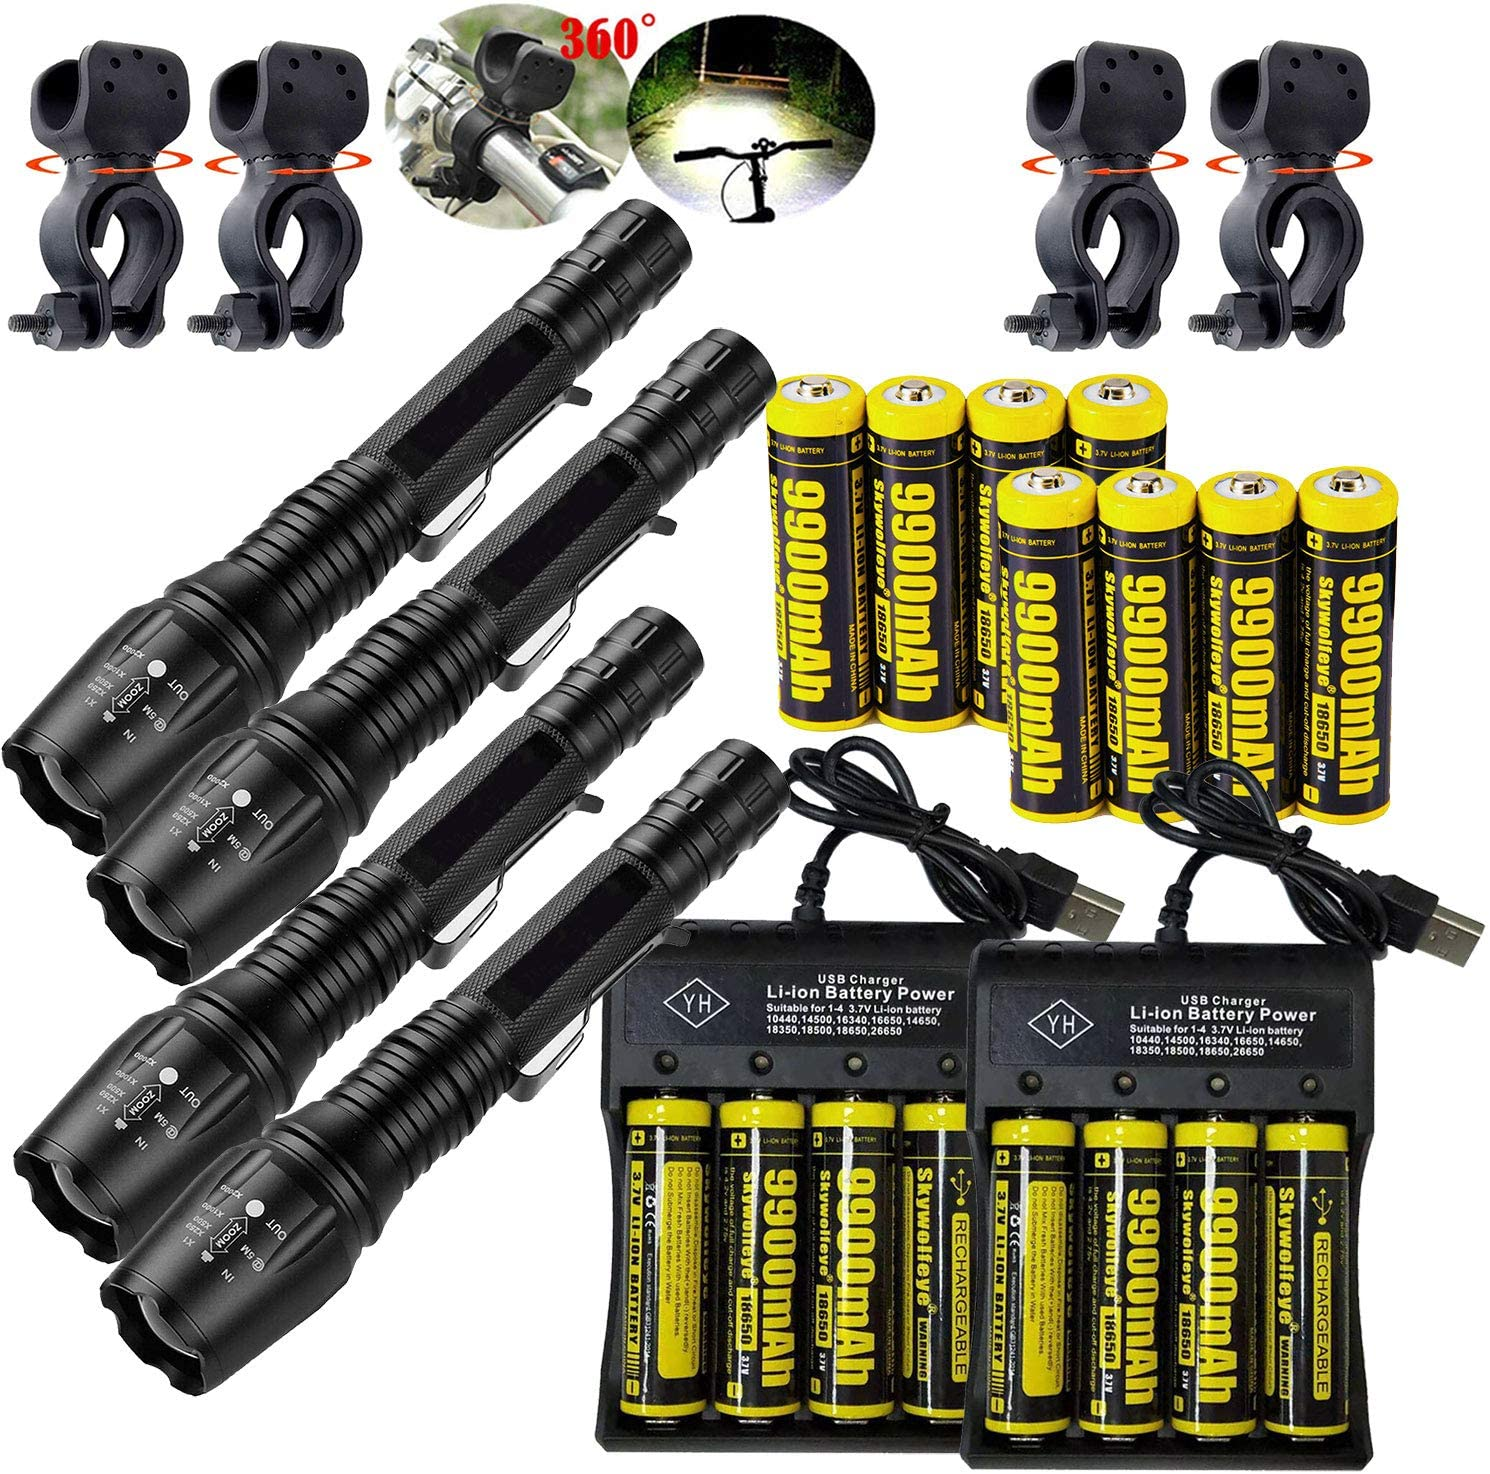 4 Set Tactical Zoomable 90000LM 5 Modes Portable LED 18650 Flashlight 9900mAh Rechargeable Batteries 4 Slots USB Universal Smart Battery Chargers Bike clip for Camping Hiking Running Outdoor